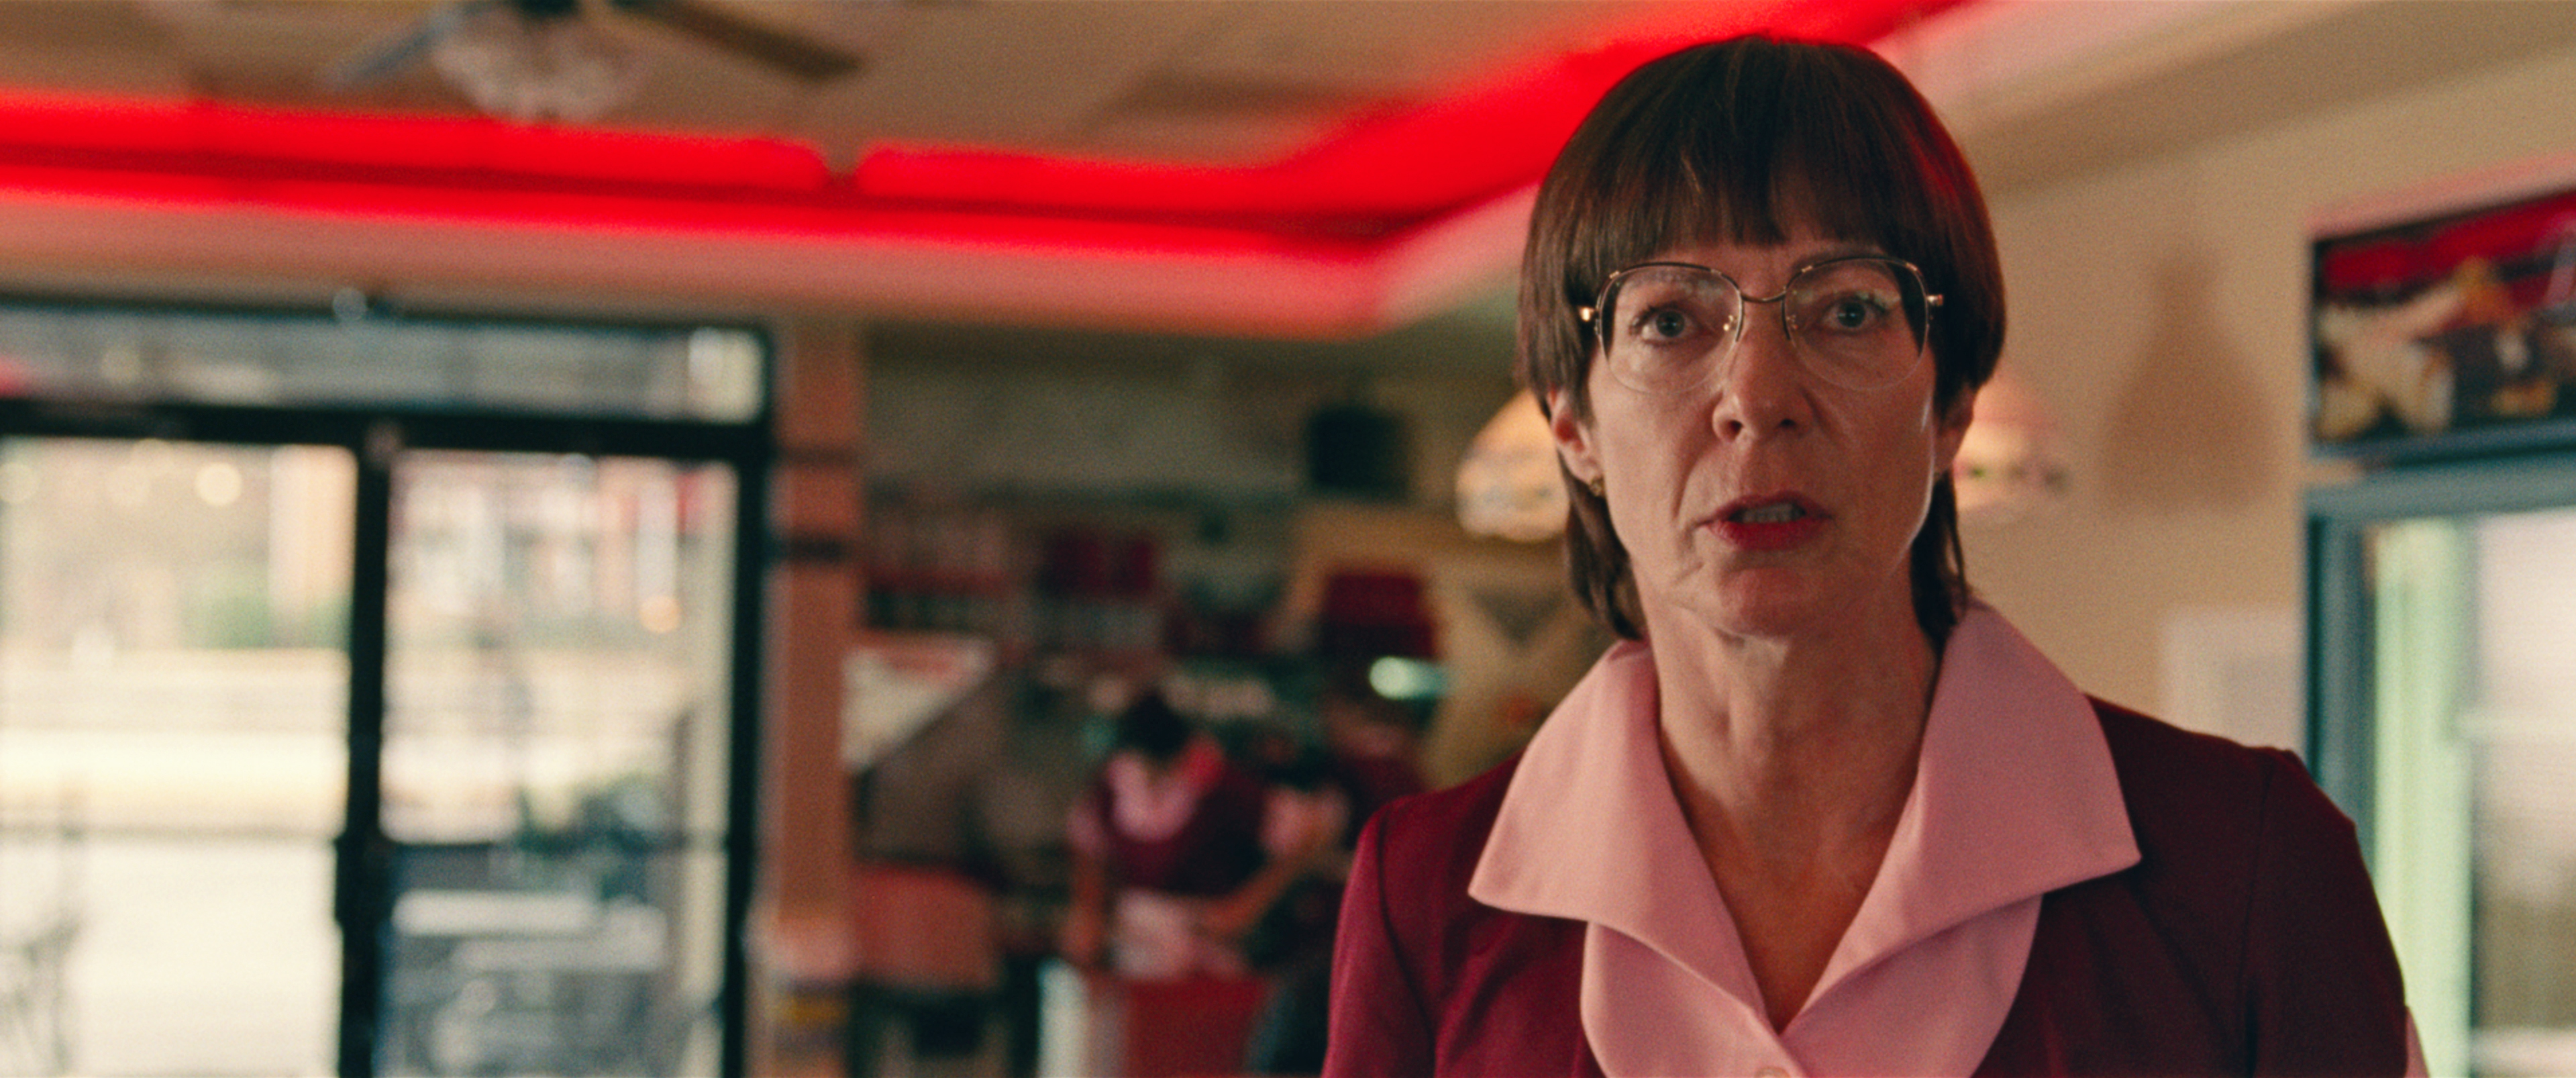 7-LaVona Golden (Allison Janney) at work in I, TONYA, courtesy of NEON